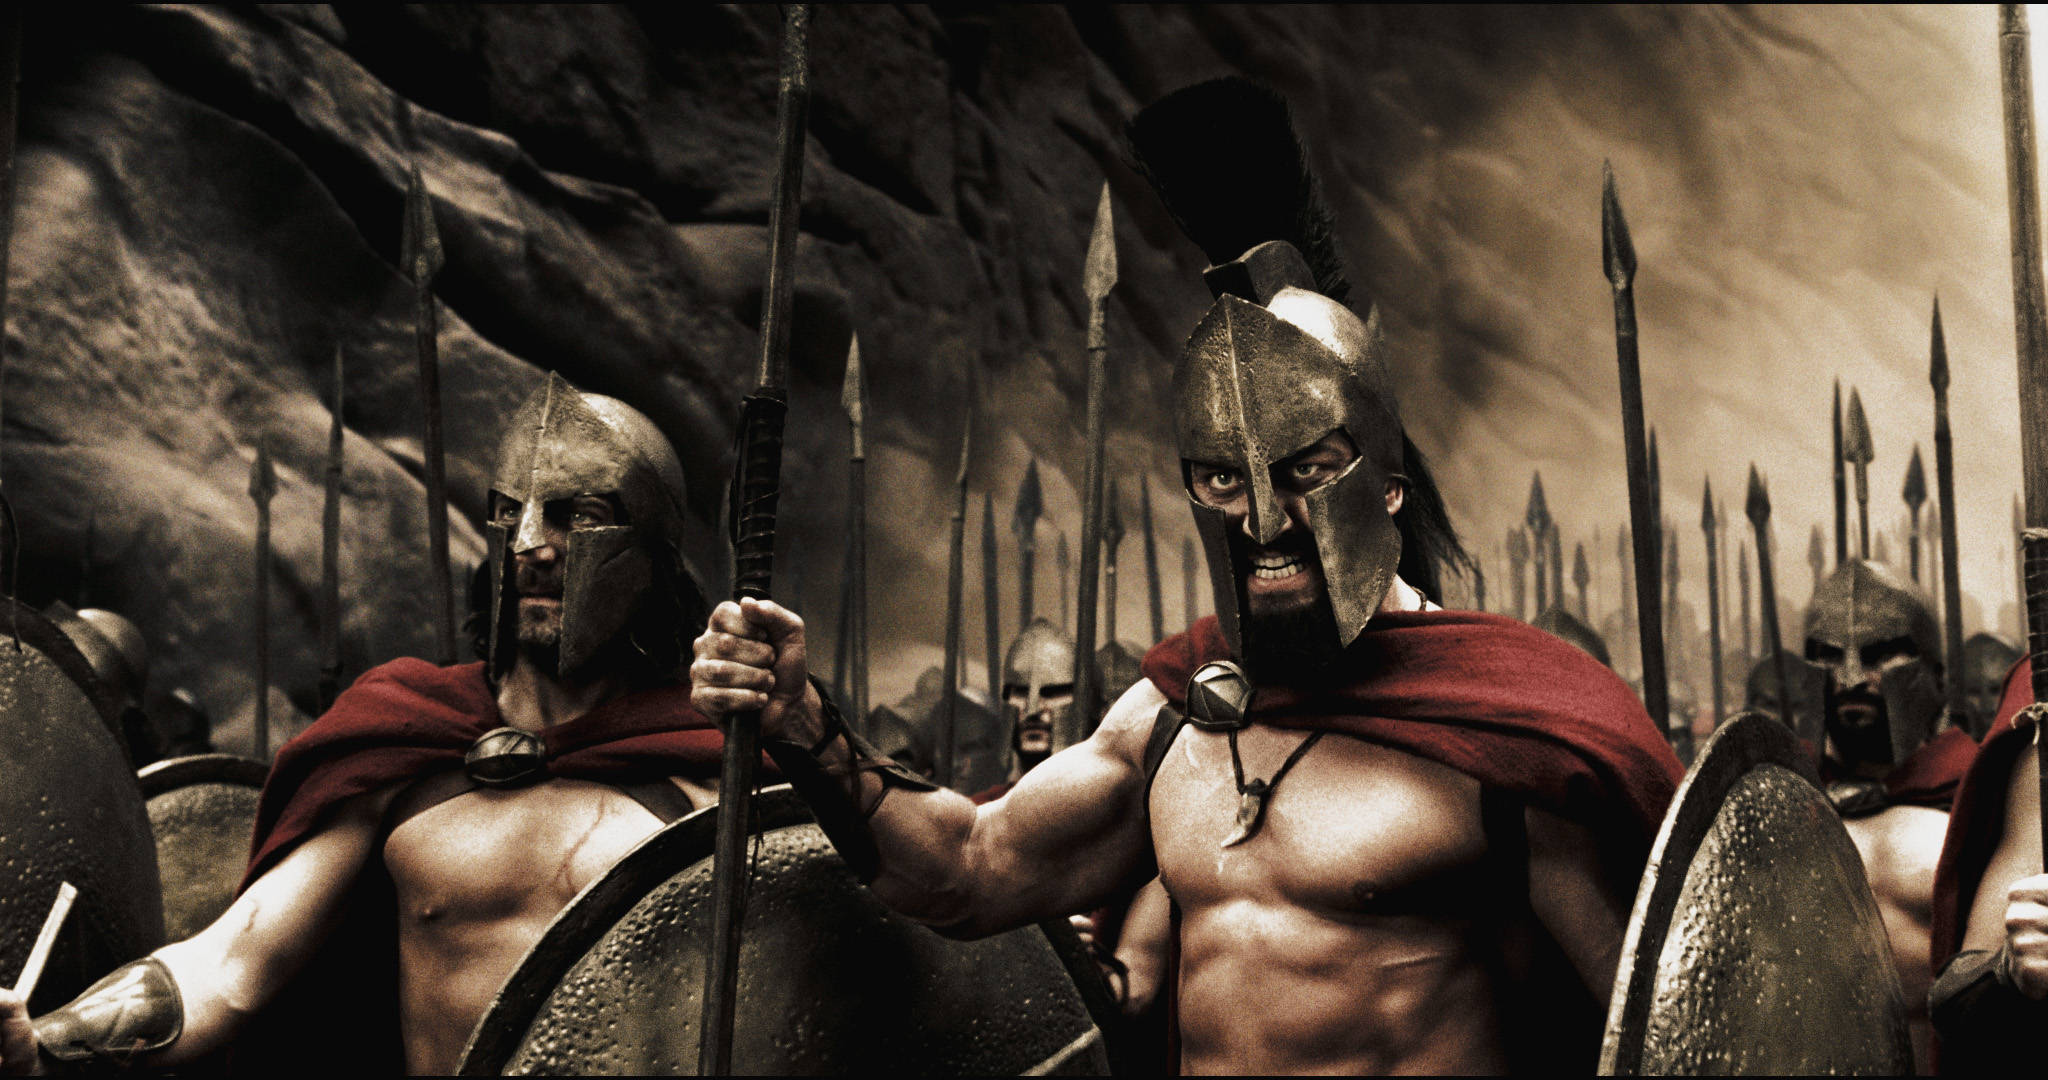 """Captain (VINCENT REGAN), Leonidas (GERARD BUTLER) and the Spartans stand ready to halt the advance of the Persian army in Warner Bros. Pictures', Legendary Pictures' and Virtual Studios' action drama """"300,"""" distributed by Warner Bros. Pictures. PHOTOGRAPHS TO BE USED SOLELY FOR ADVERTISING, PROMOTION, PUBLICITY OR REVIEWS OF THIS SPECIFIC MOTION PICTURE AND TO REMAIN THE PROPERTY OF THE STUDIO. NOT FOR SALE OR REDISTRIBUTION"""